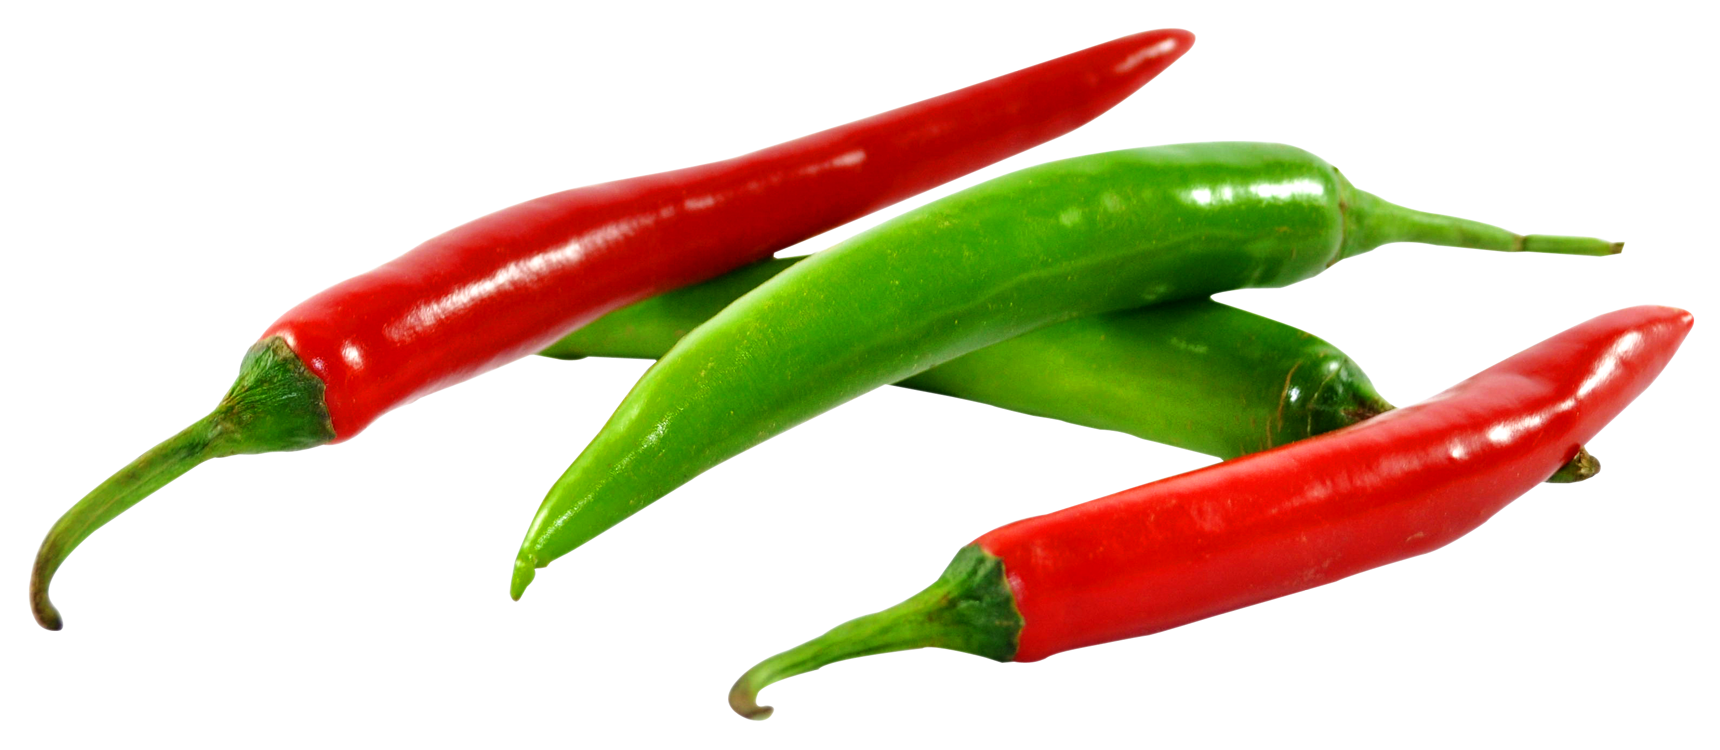 Green and Red Chilli PNG Image.